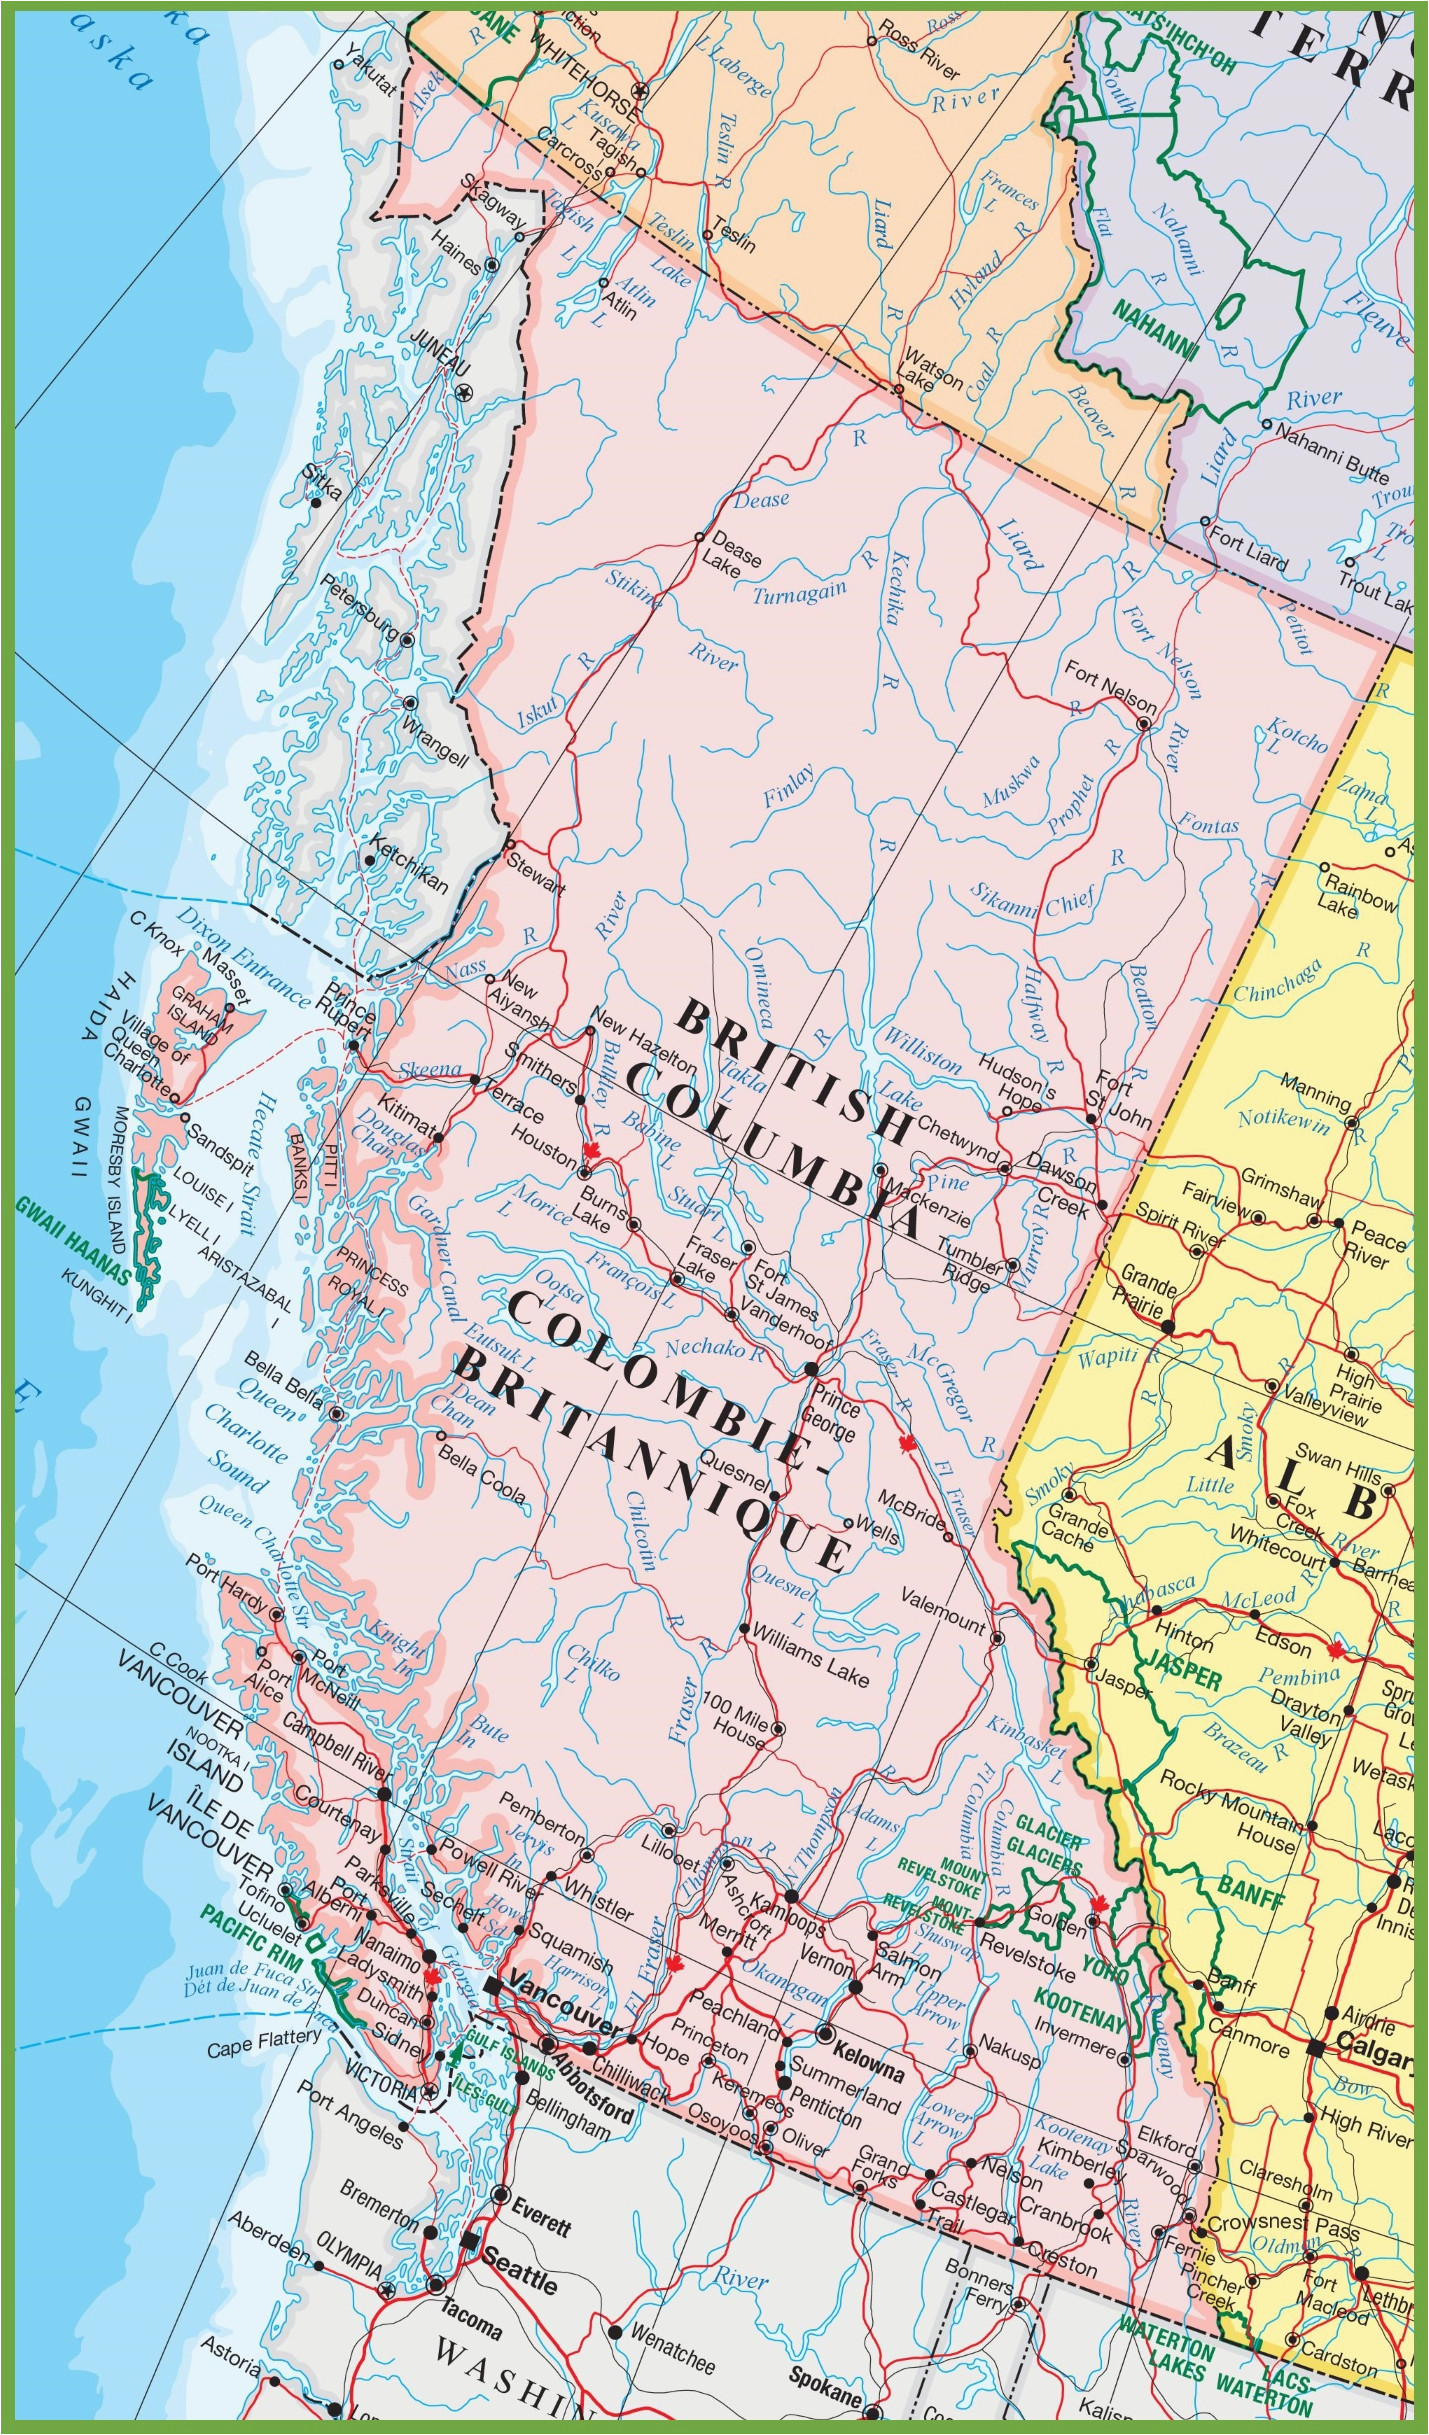 Road Map Of Western Canada Large Detailed Map Of British Columbia with Cities and towns